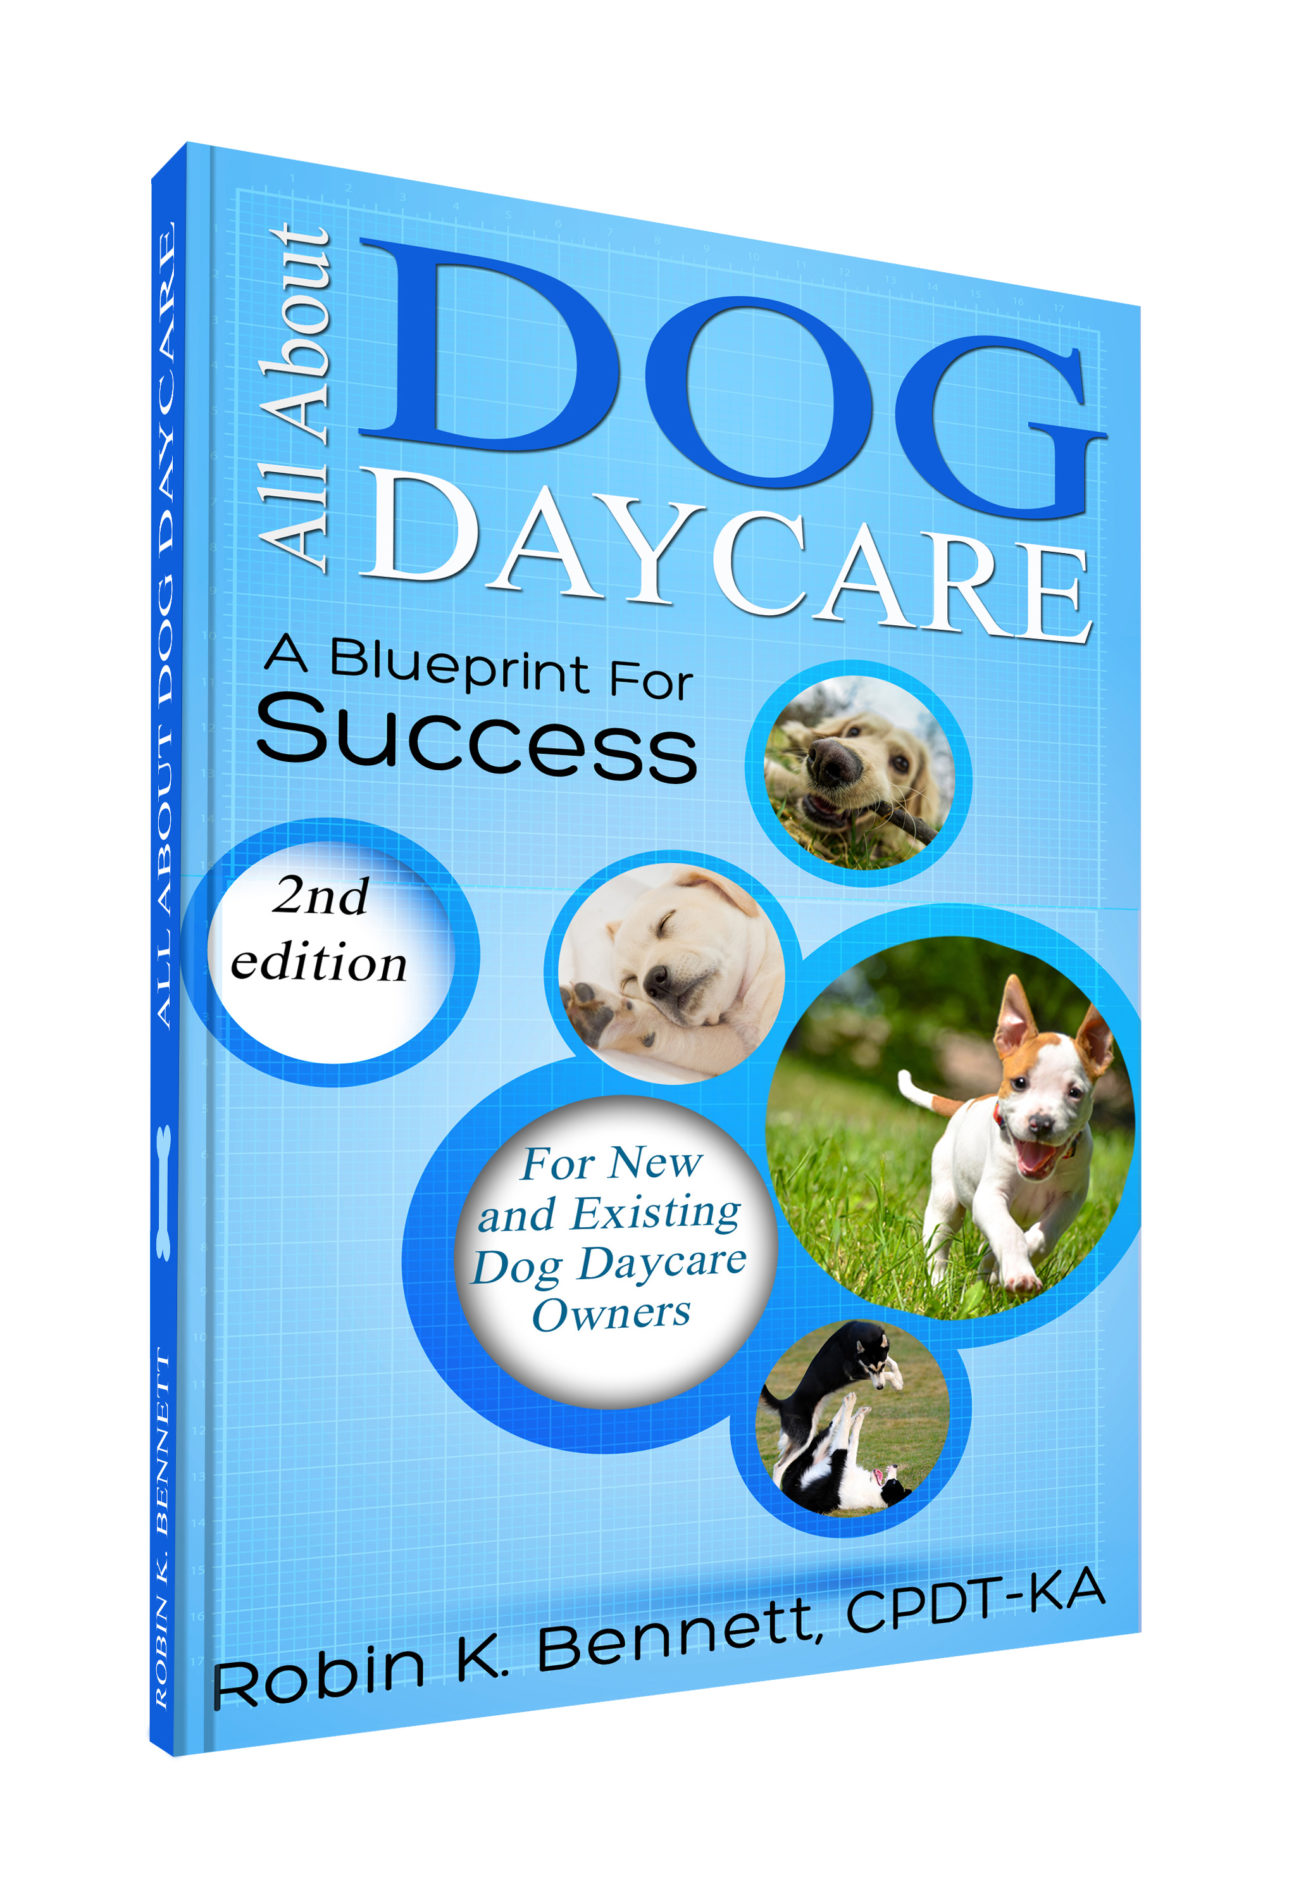 All About Dog Daycare: A Blueprint for Success second edition book cover.